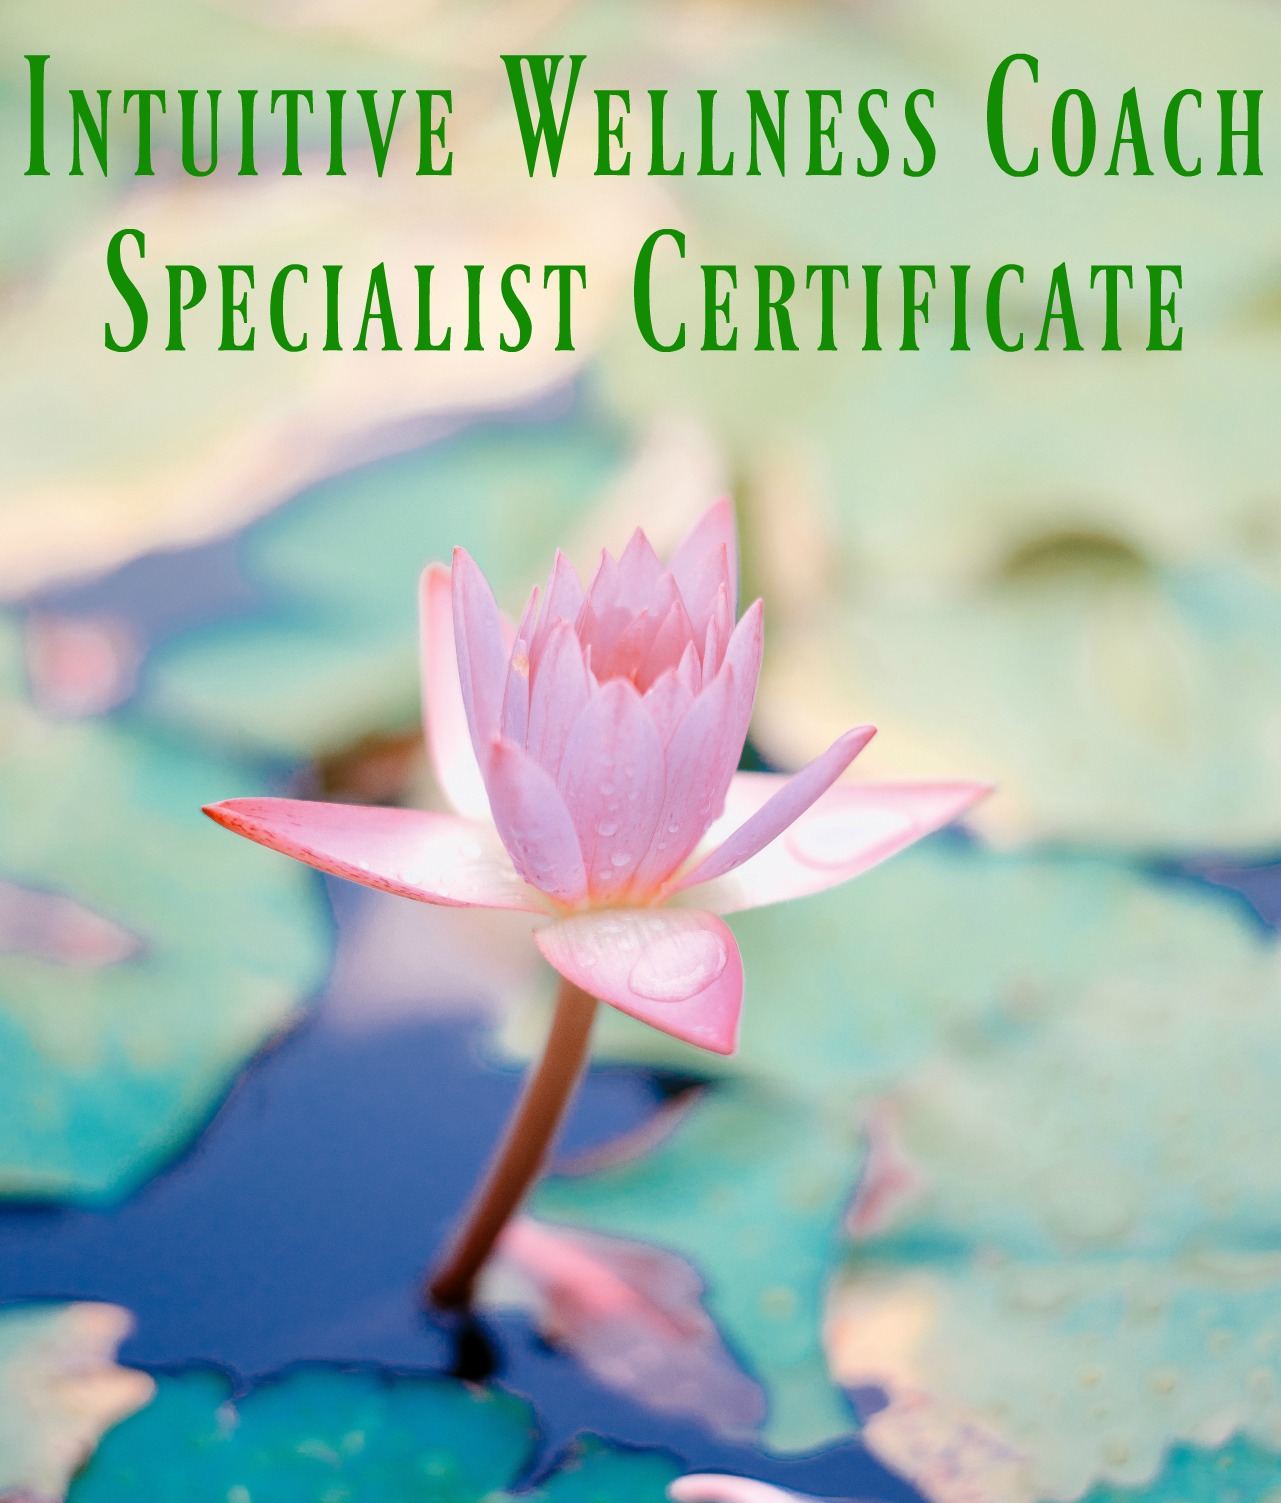 Enroll In The Intuitive Wellness Coach Course And Get Certified